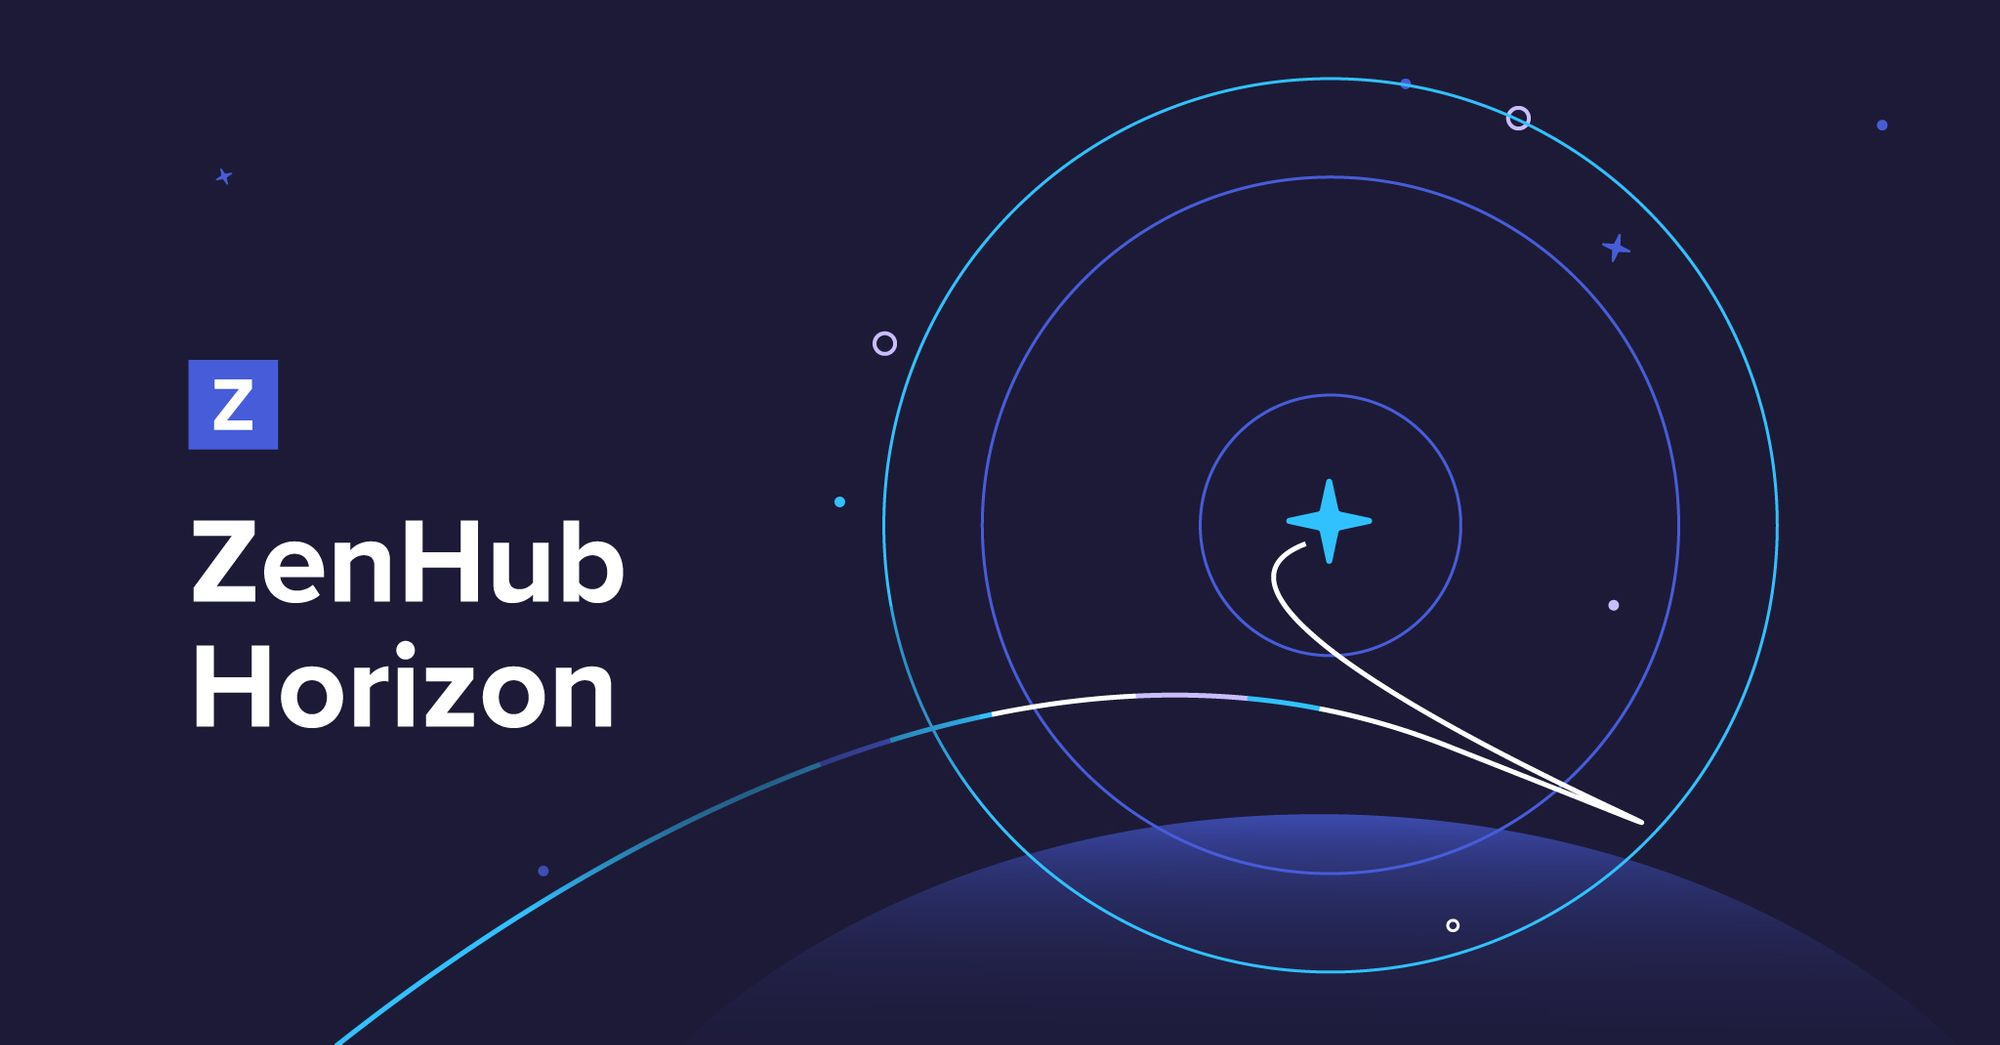 ZenHub Horizon 🛰 See what's new in ZenHub!